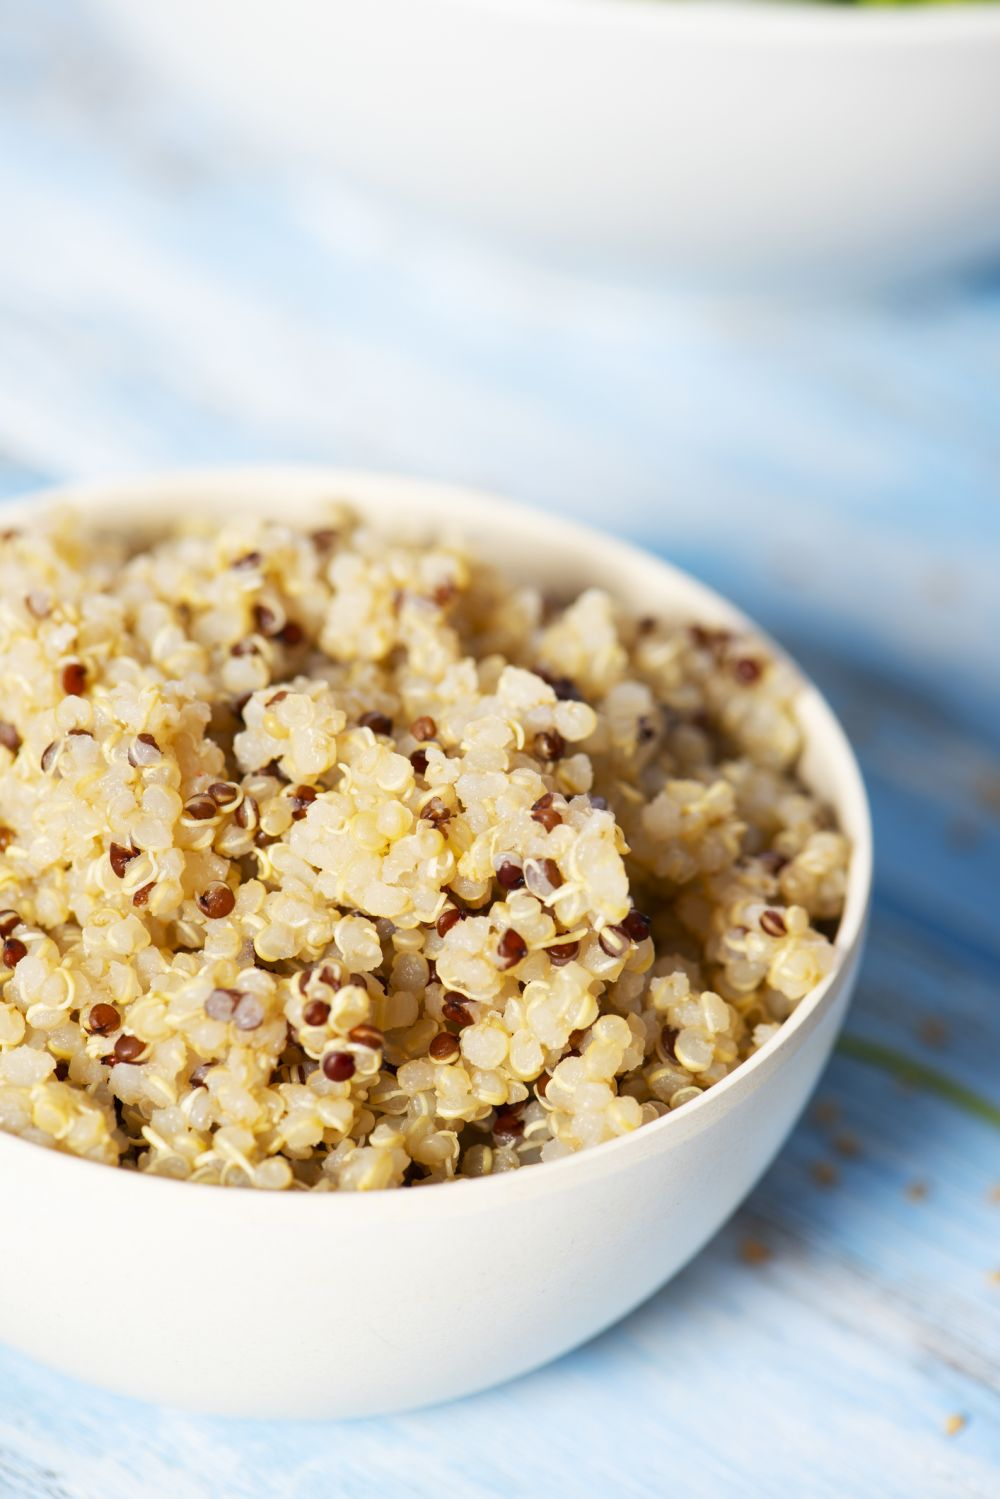 How to thaw cooked quinoa